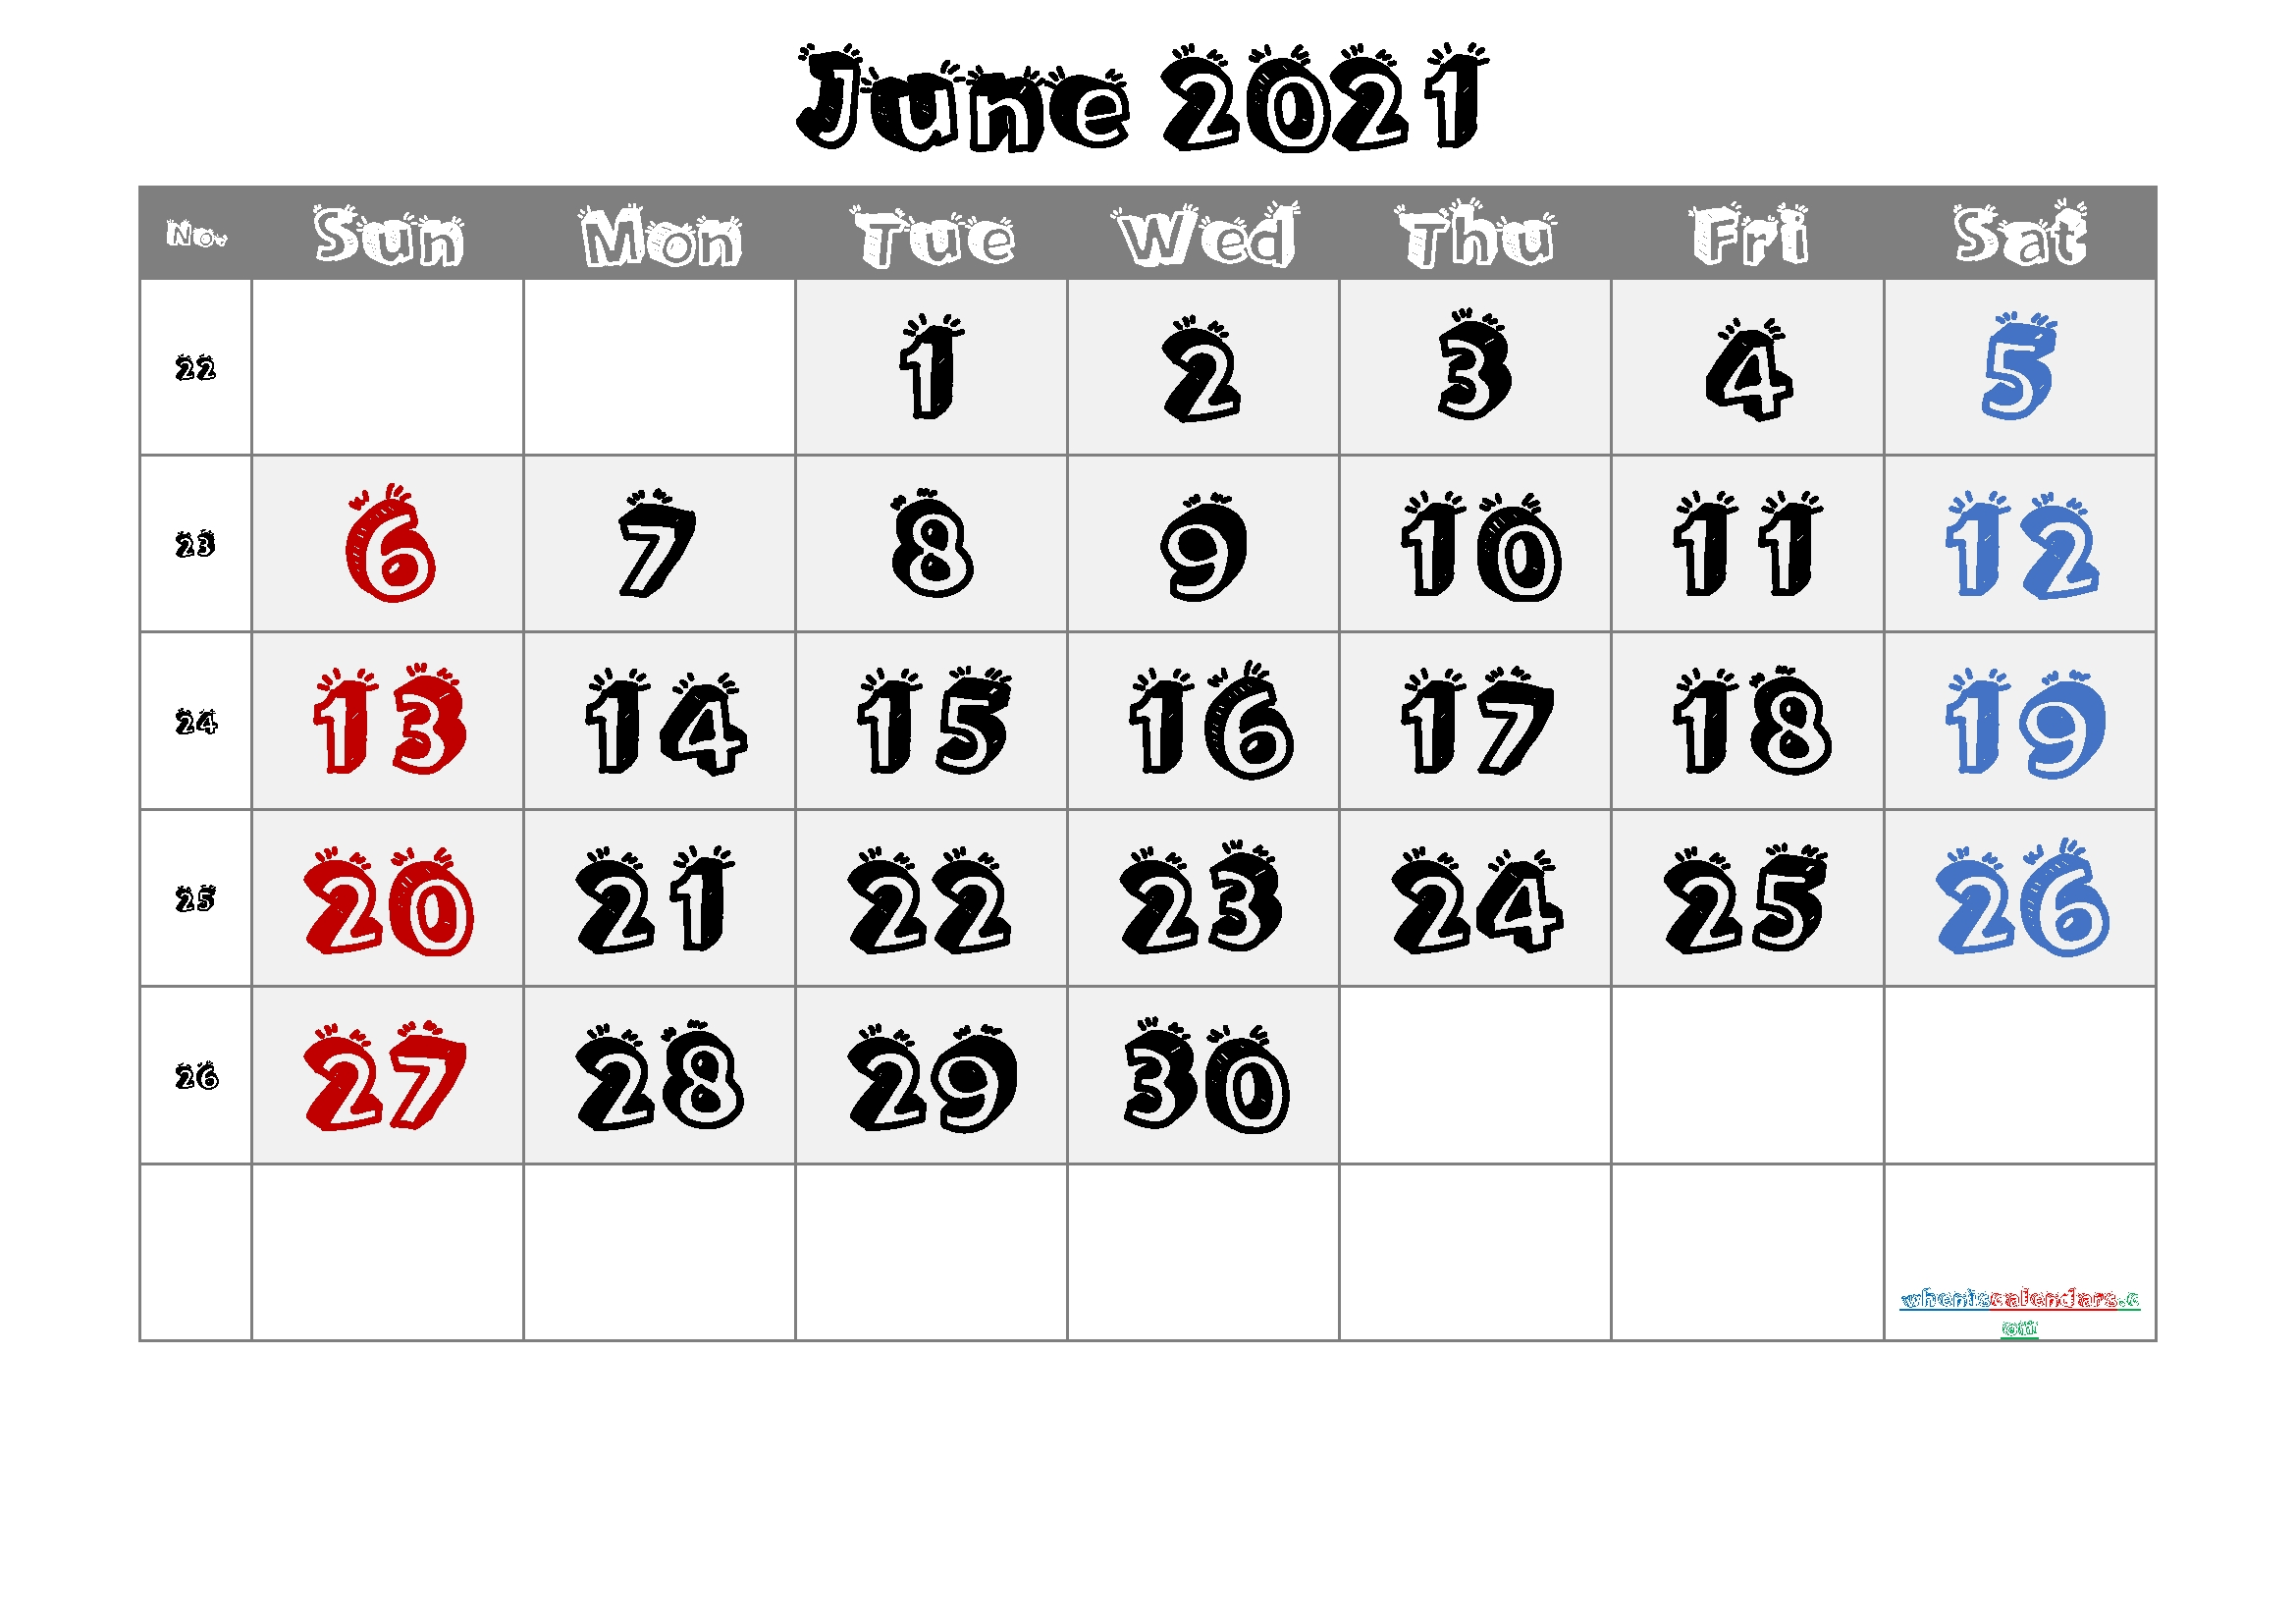 June 2021 Printable Calendar With Week Numbers – 6 Templates – Free Printable 2020 Monthly-Sepetember 2021 Calendar With Big Numbers